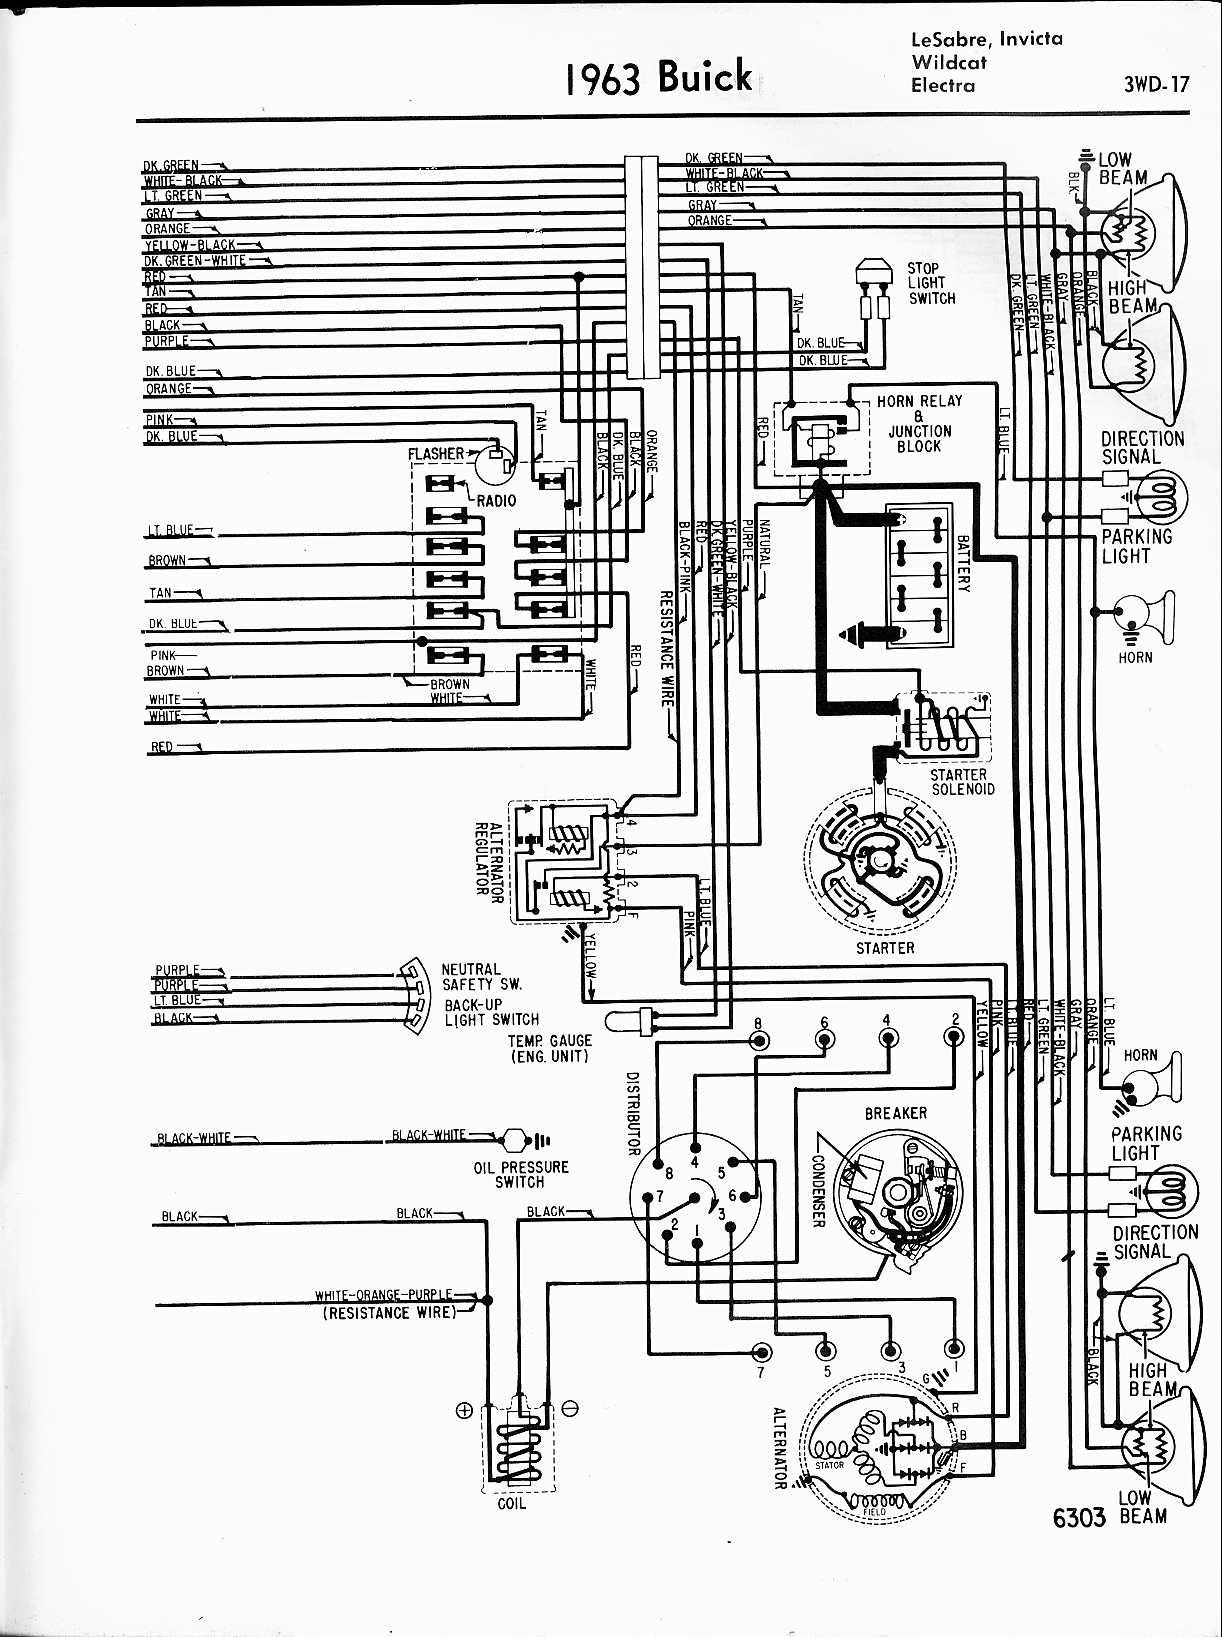 buick wiring diagrams: 1957-1965 65 riviera wiring diagram free picture schematic